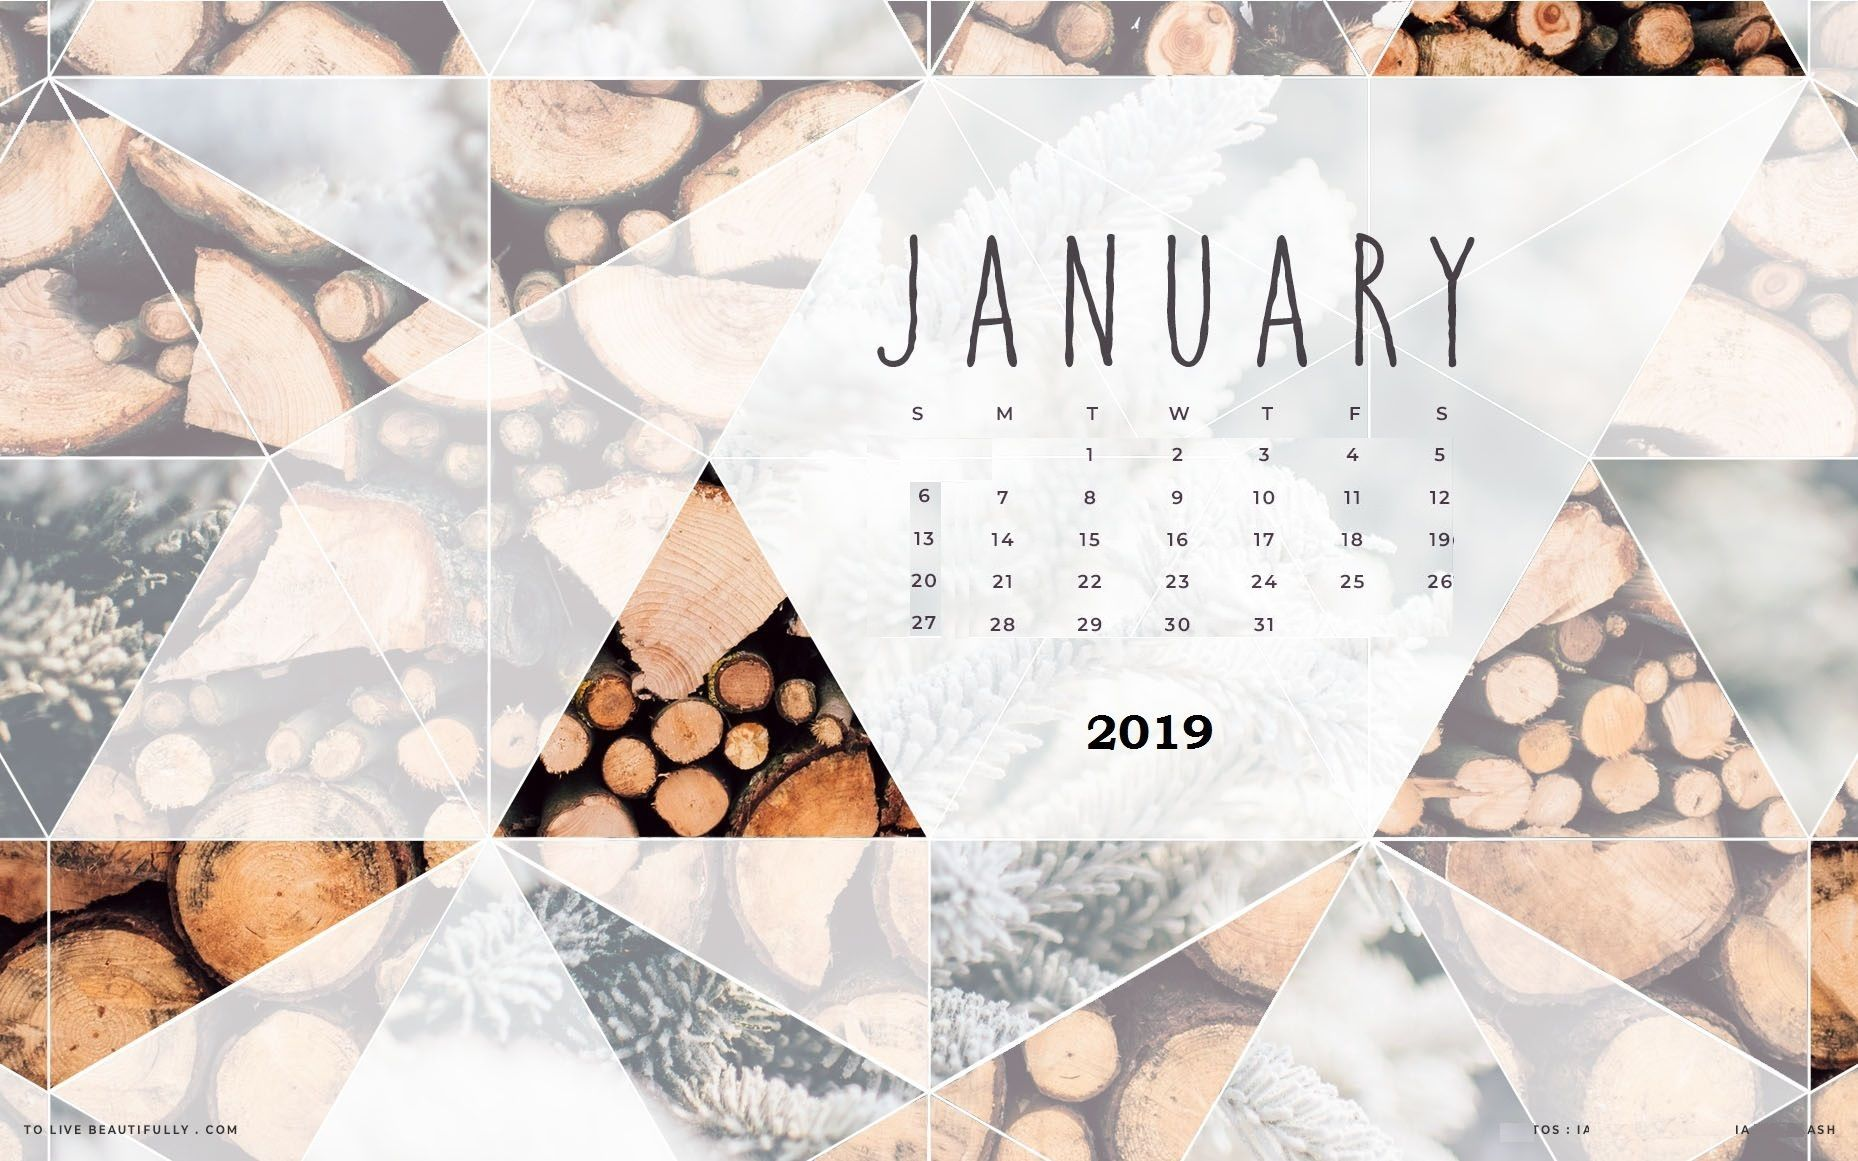 Jan 2019 Hd Wallpaper With Calendar Monthly Calendar Templates January 2019 Hd Calendar Wallpape Desktop Wallpaper Calendar Calendar Wallpaper Desktop Calendar